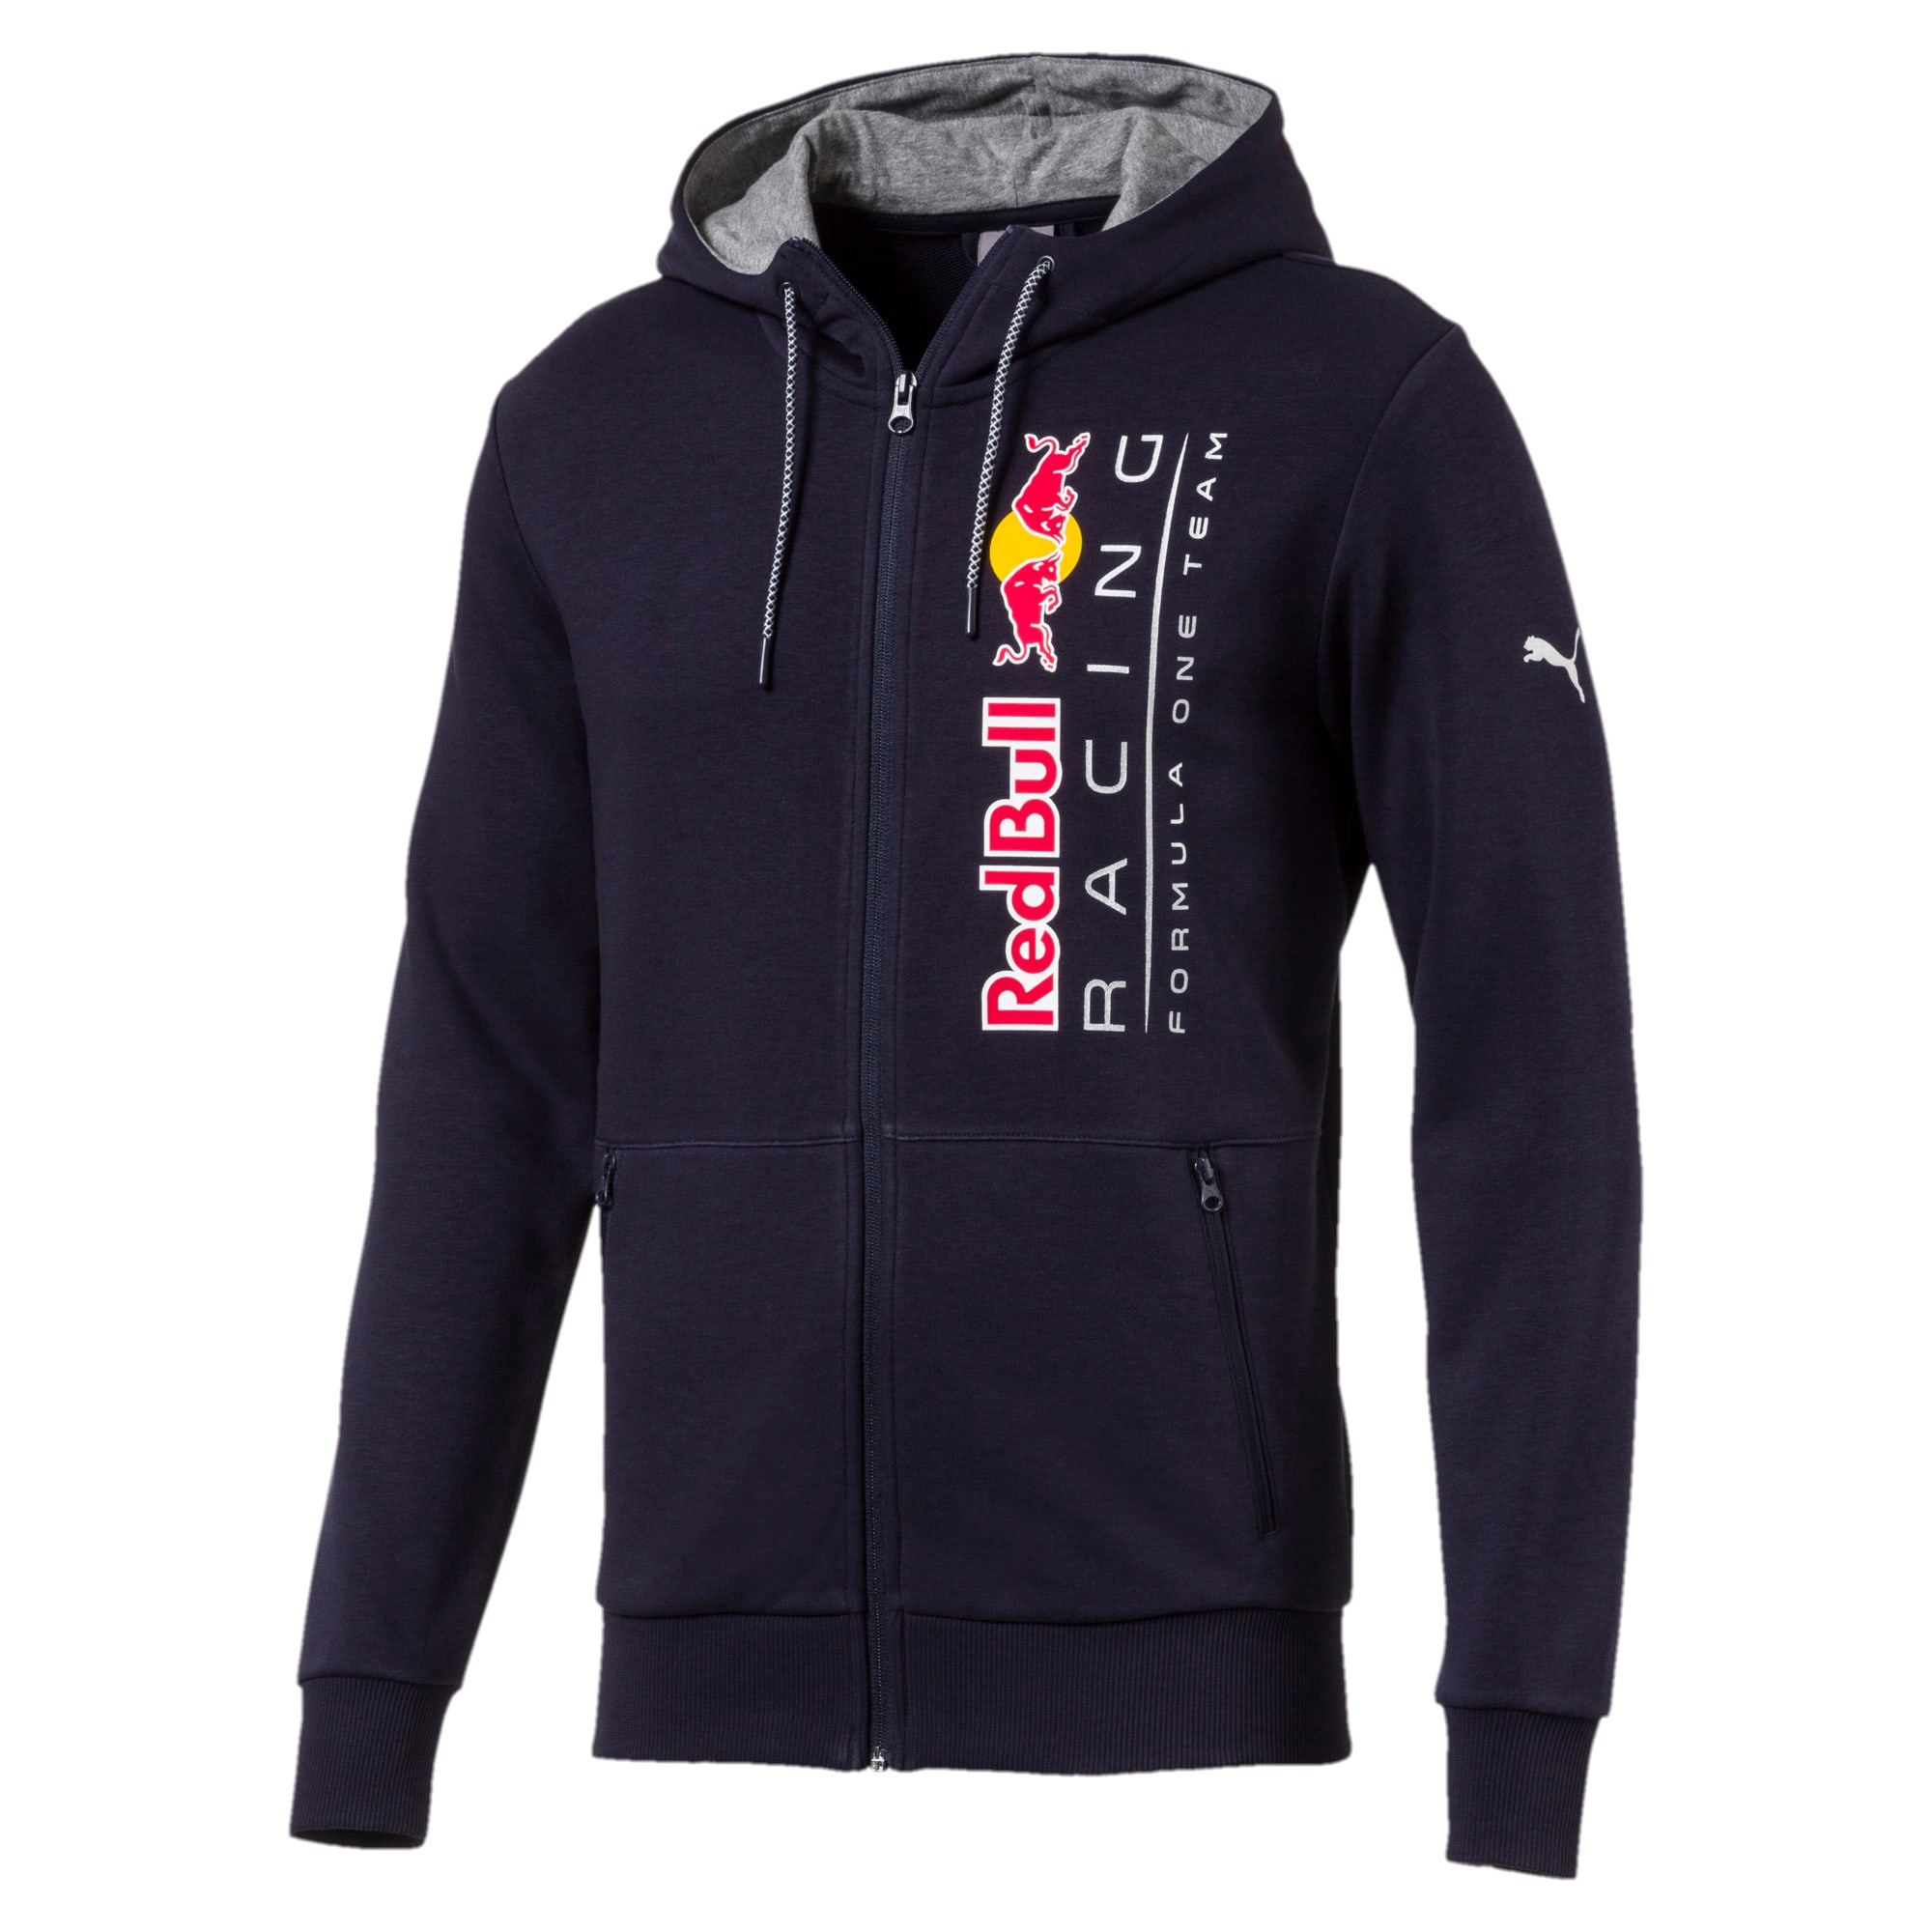 Thumbnail 1 of Red Bull Racing Lifestyle Men's Hooded Sweat Jacket, NIGHT SKY, medium